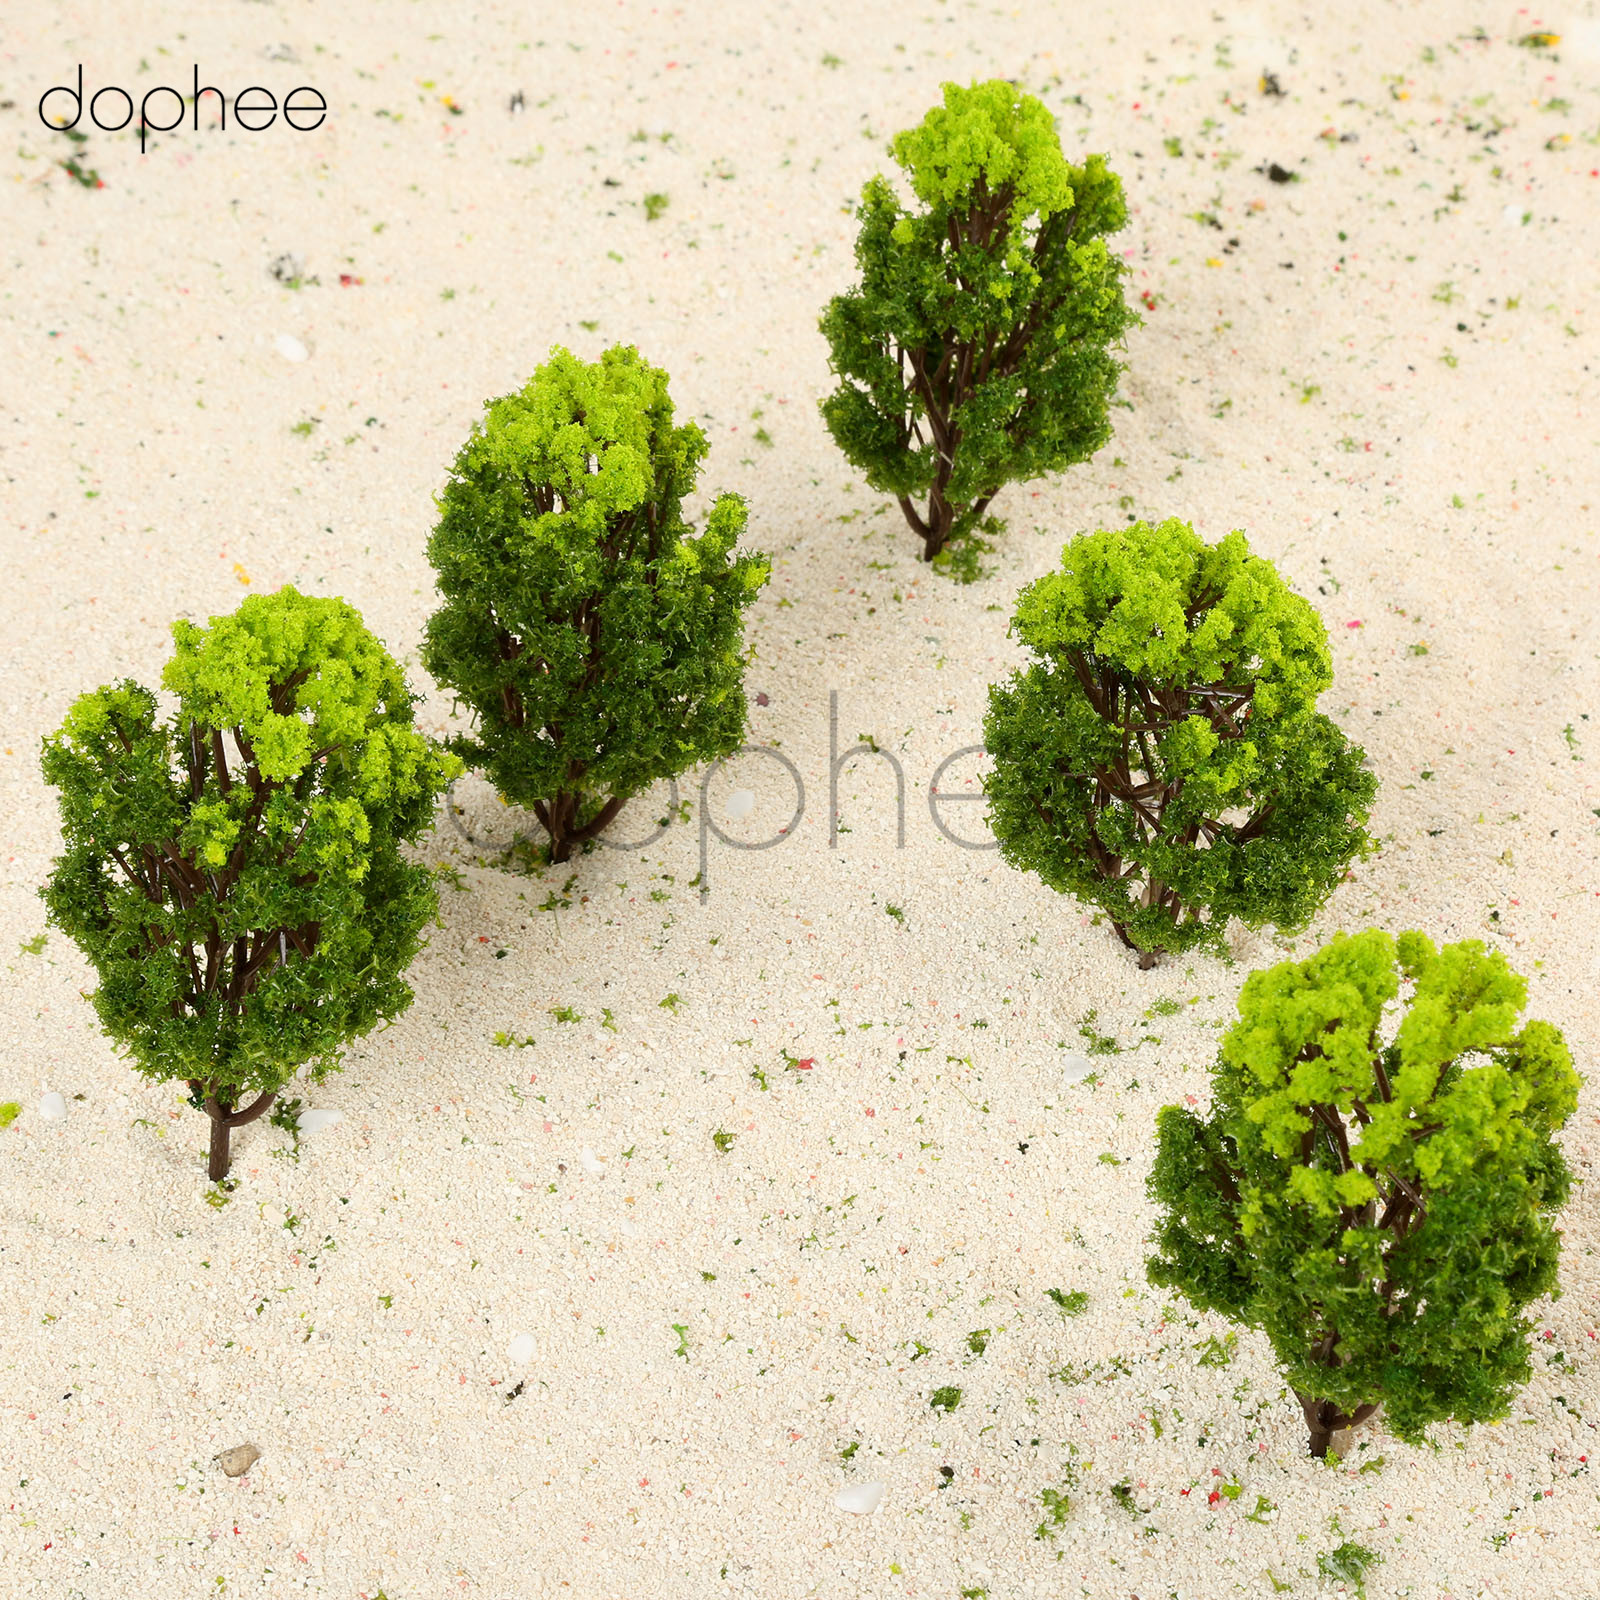 dophee 10pcs Plastic Model Trees Ho Scale 10cm Green Model Railway Park Scene Landscape